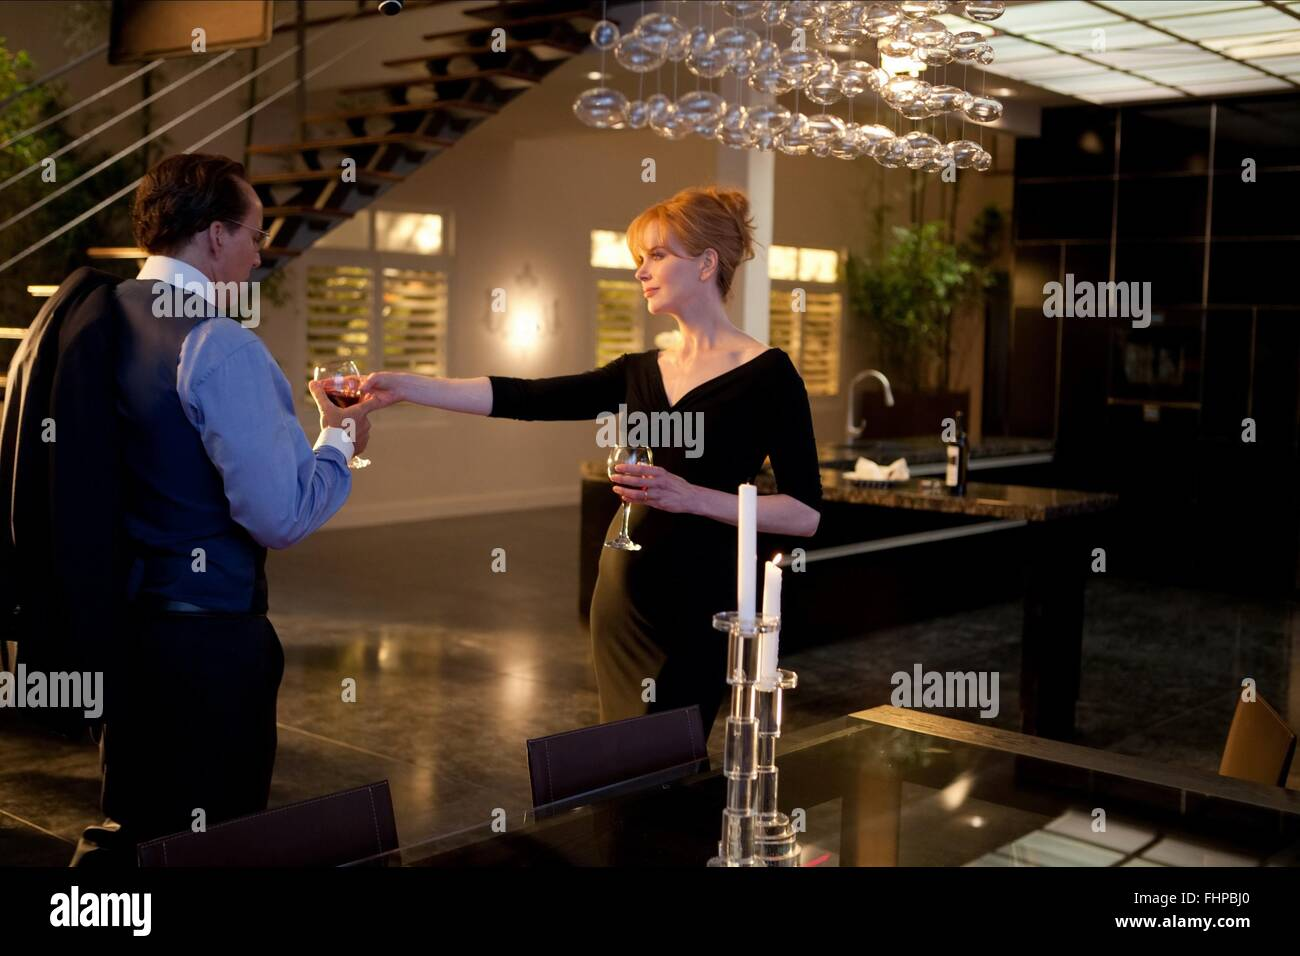 NICOLAS CAGE \u0026 NICOLE KIDMAN TRESPASS (2011 Stock Photo, Royalty ...